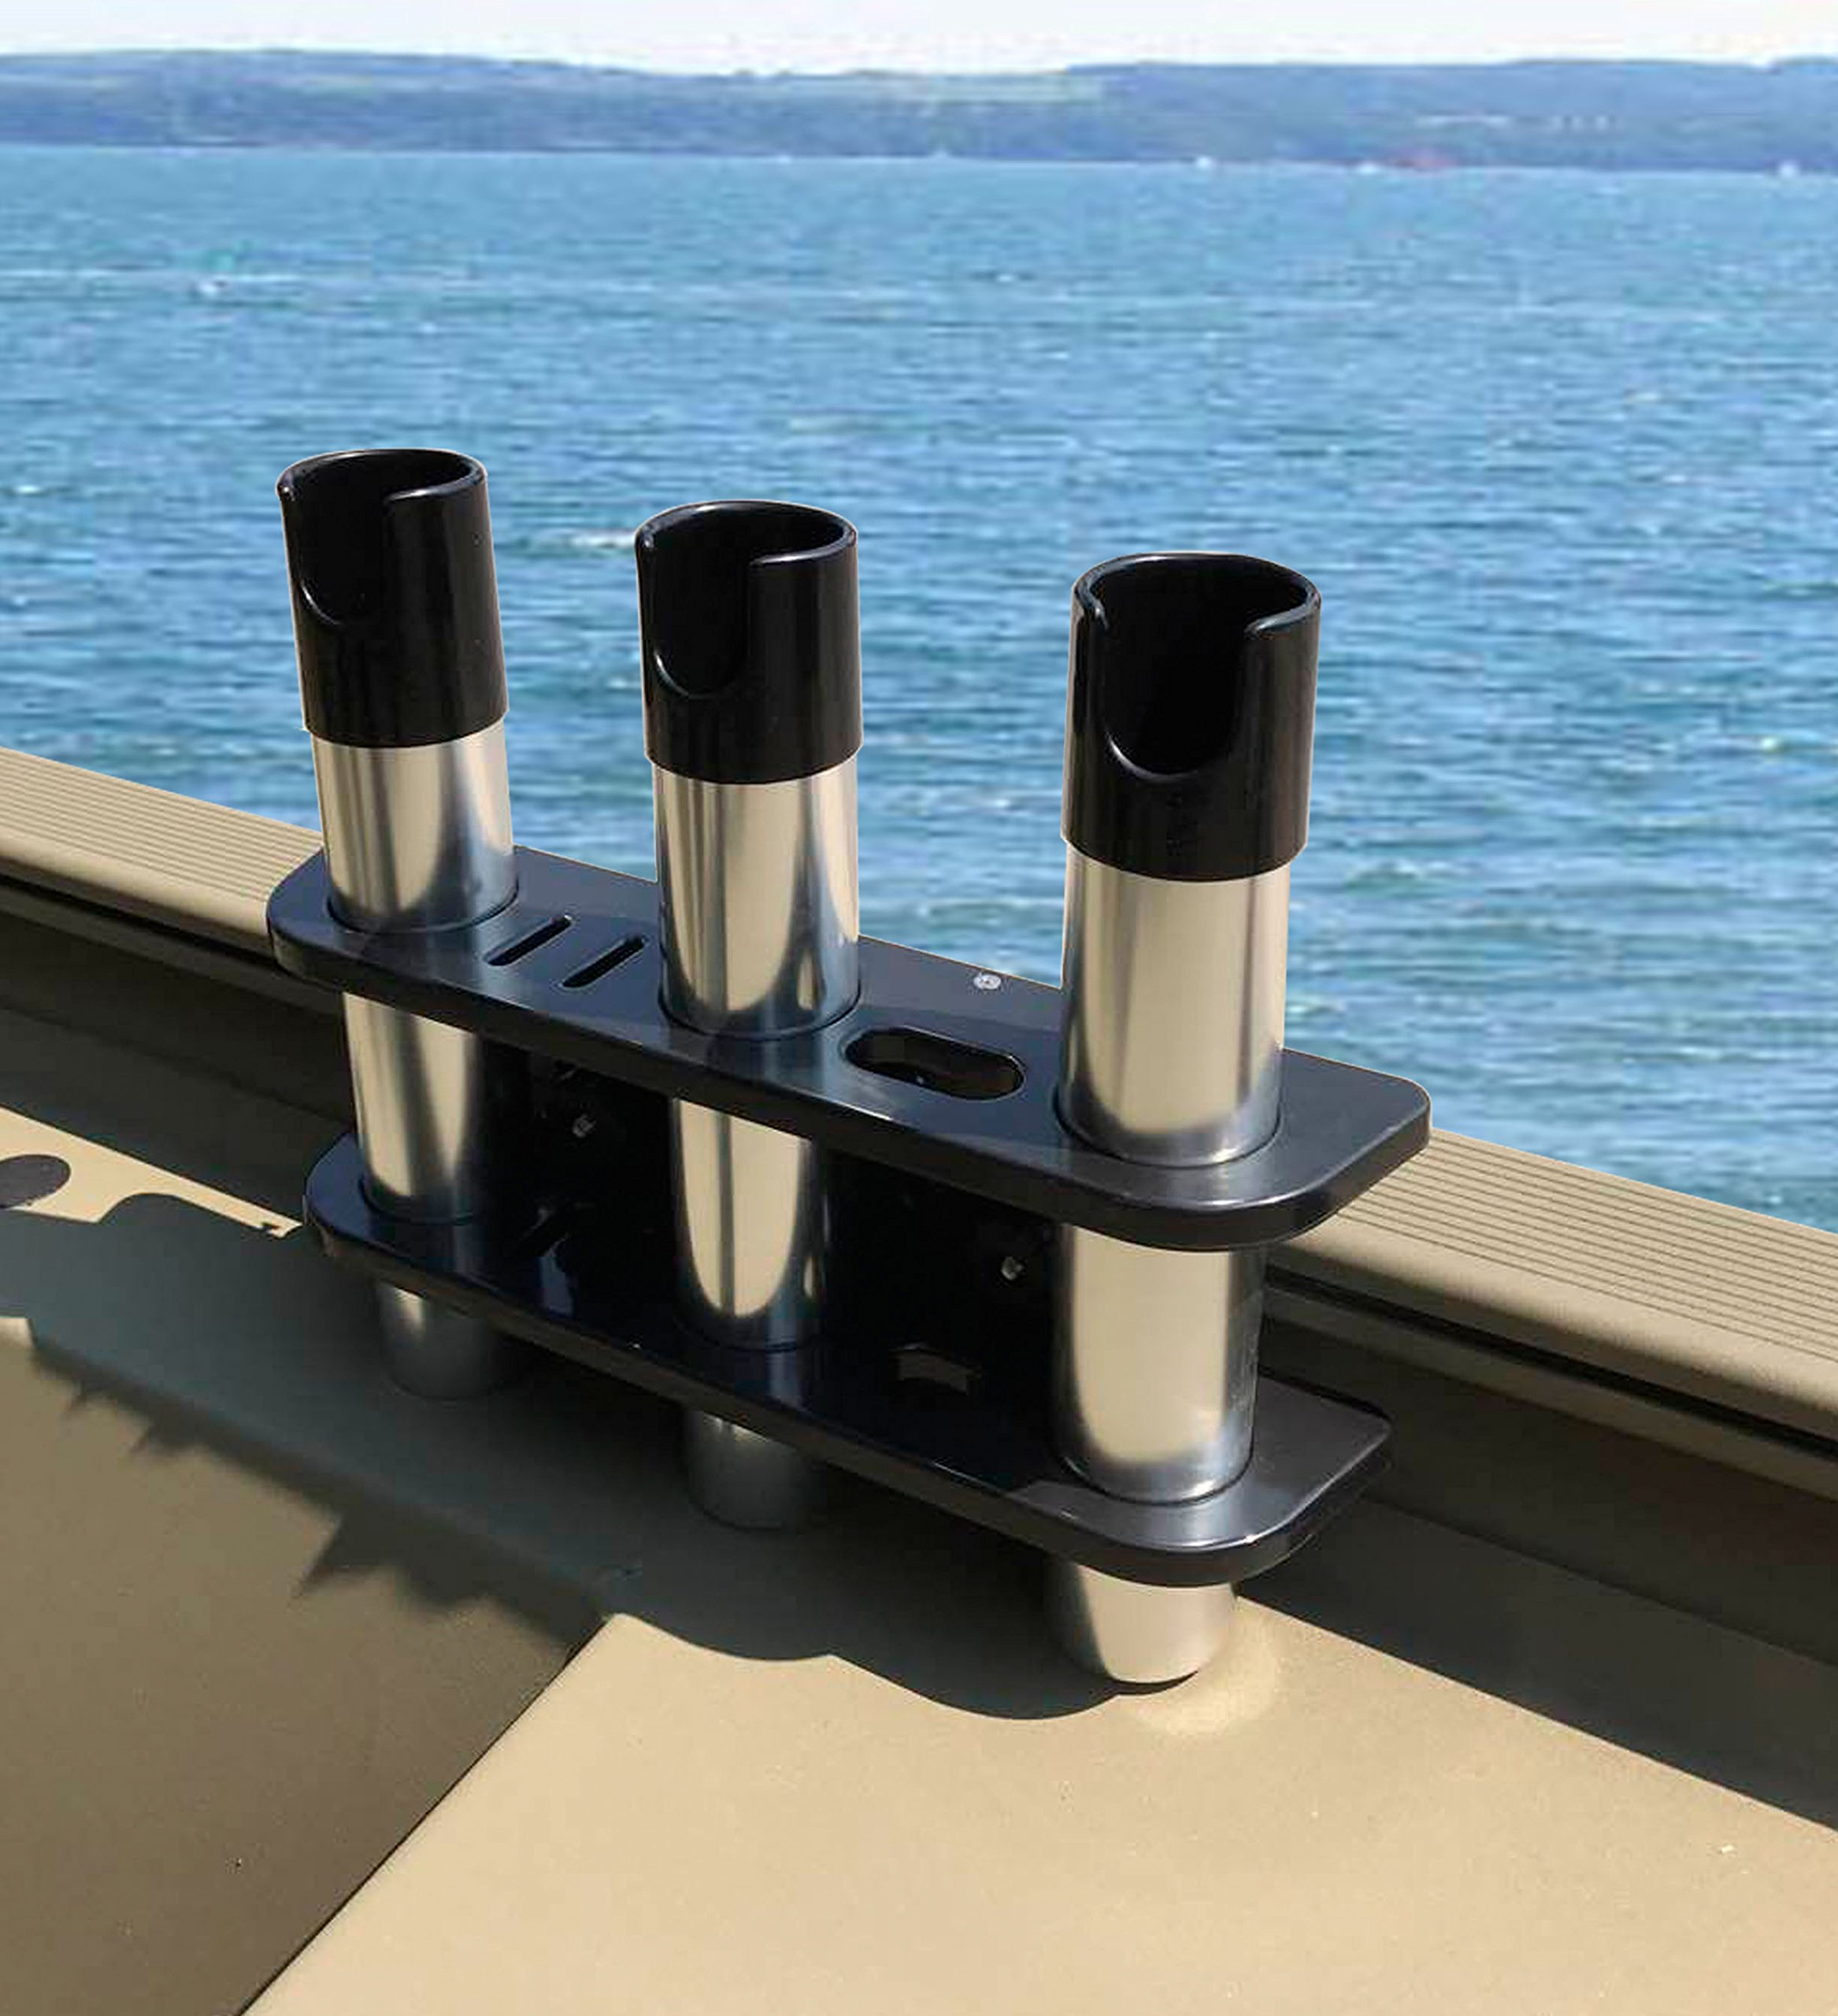 Brocraft Rod Holder for Tracker Boat - Versatrack System -3 Rods Storage -Black by Brocraft